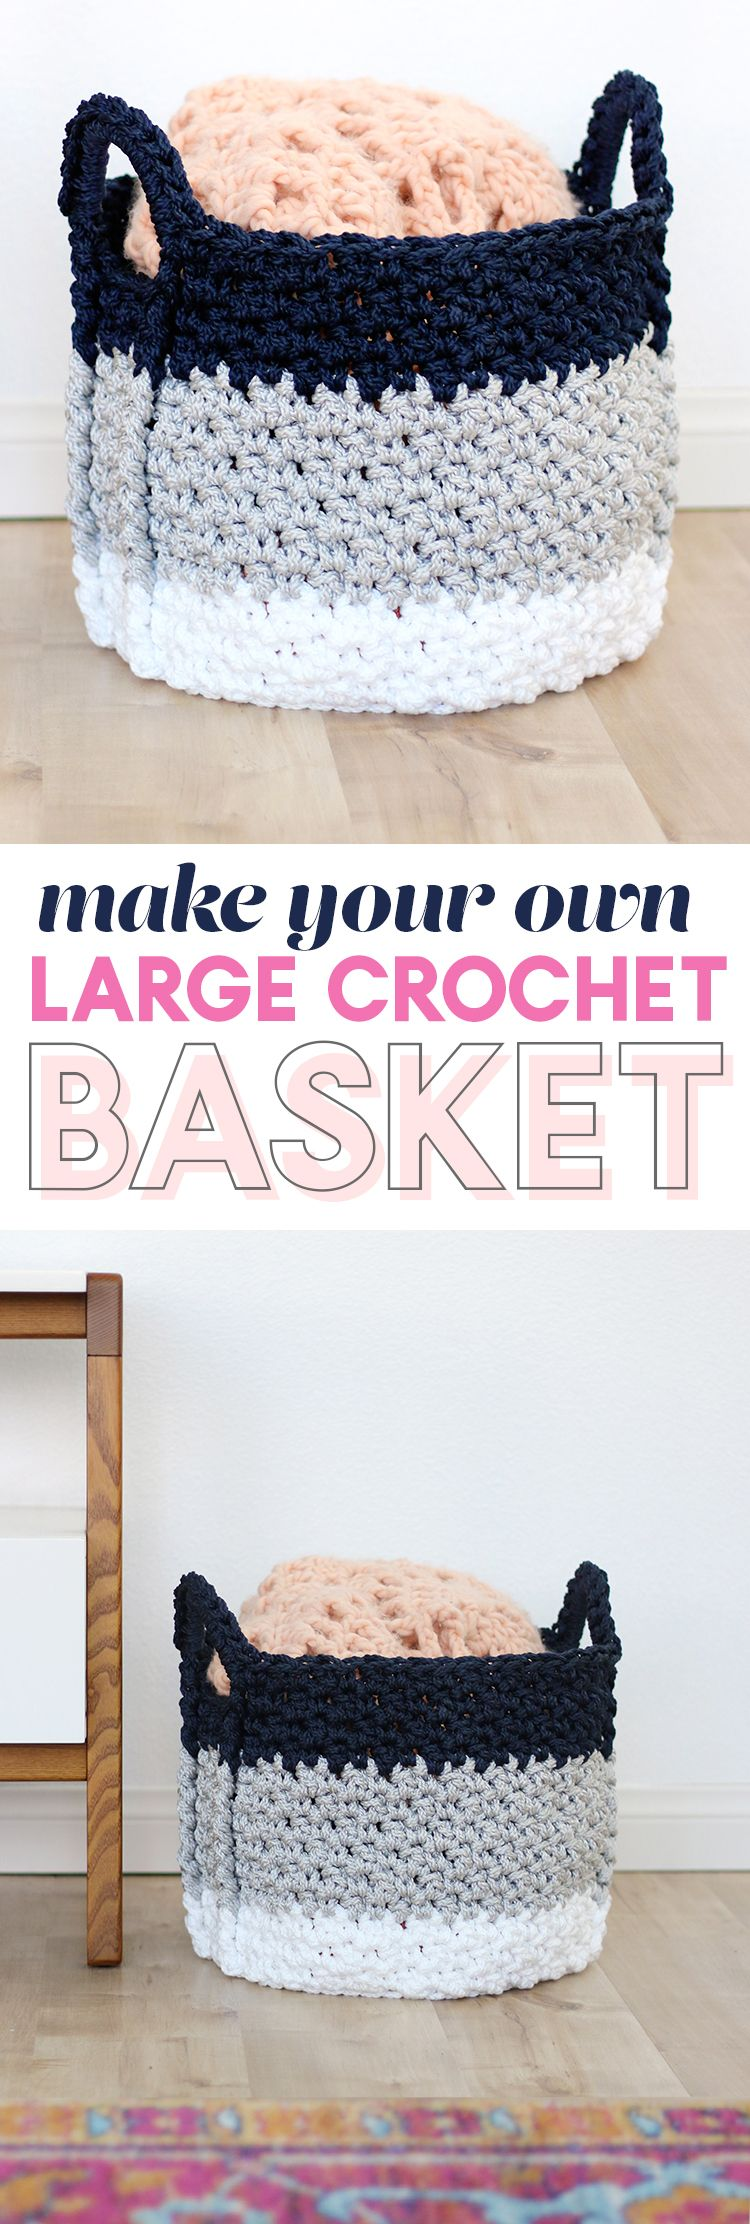 Large Crochet Basket with Handles - Free Crochet Pattern ...